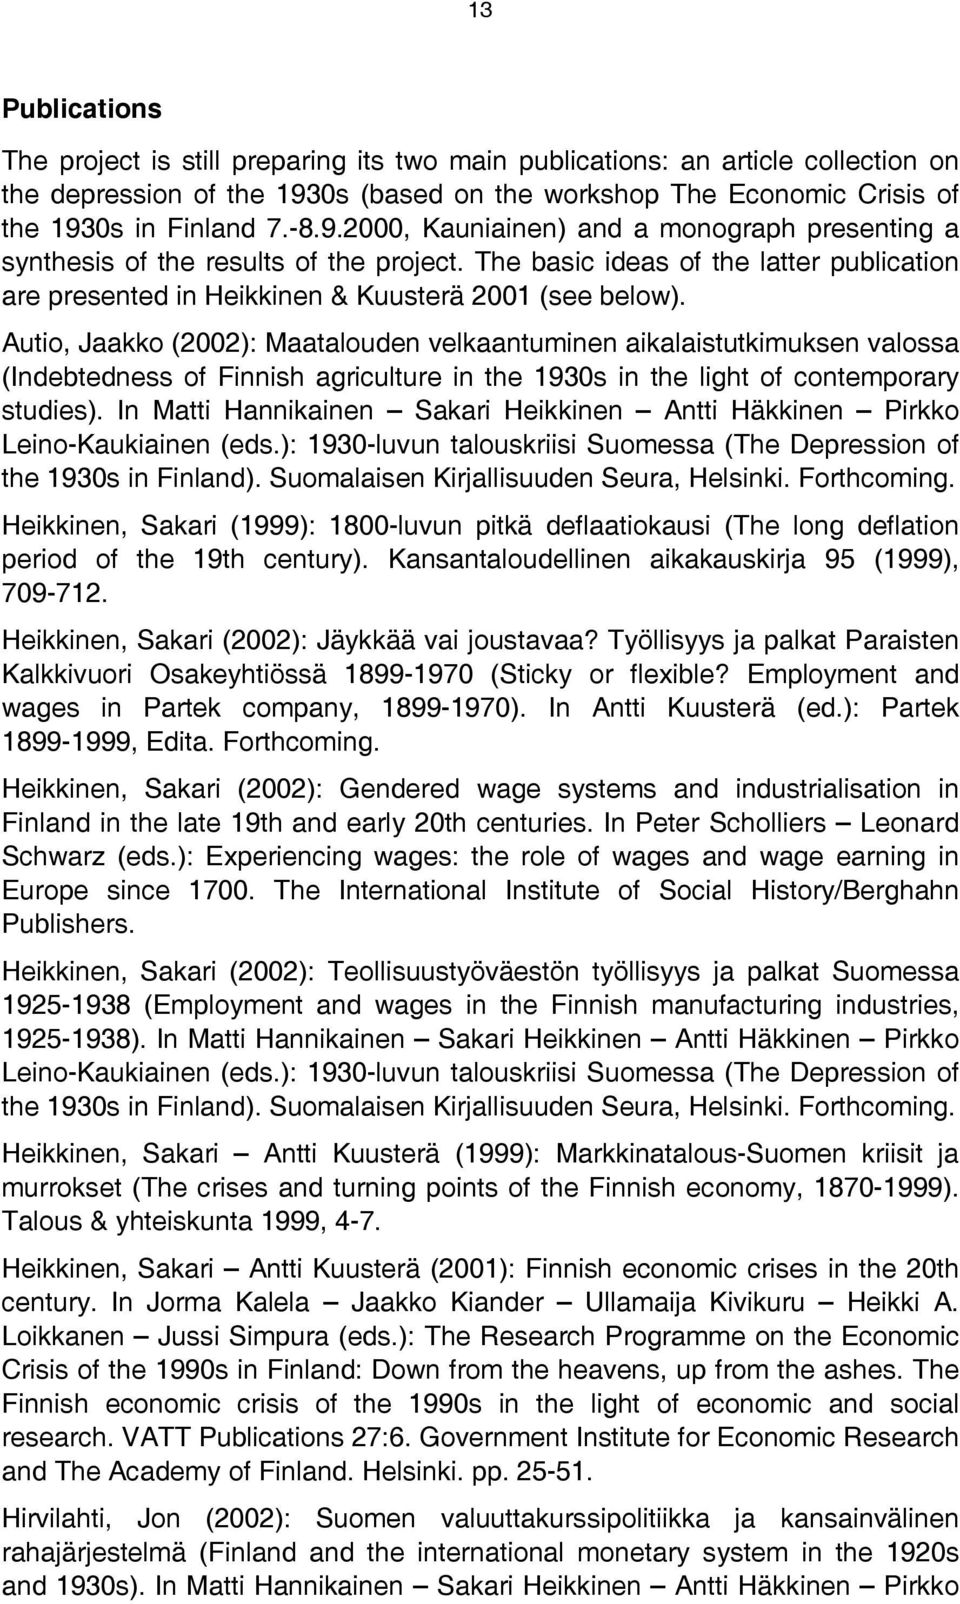 Autio, Jaakko (2002): Maatalouden velkaantuminen aikalaistutkimuksen valossa (Indebtedness of Finnish agriculture in the 1930s in the light of contemporary studies).